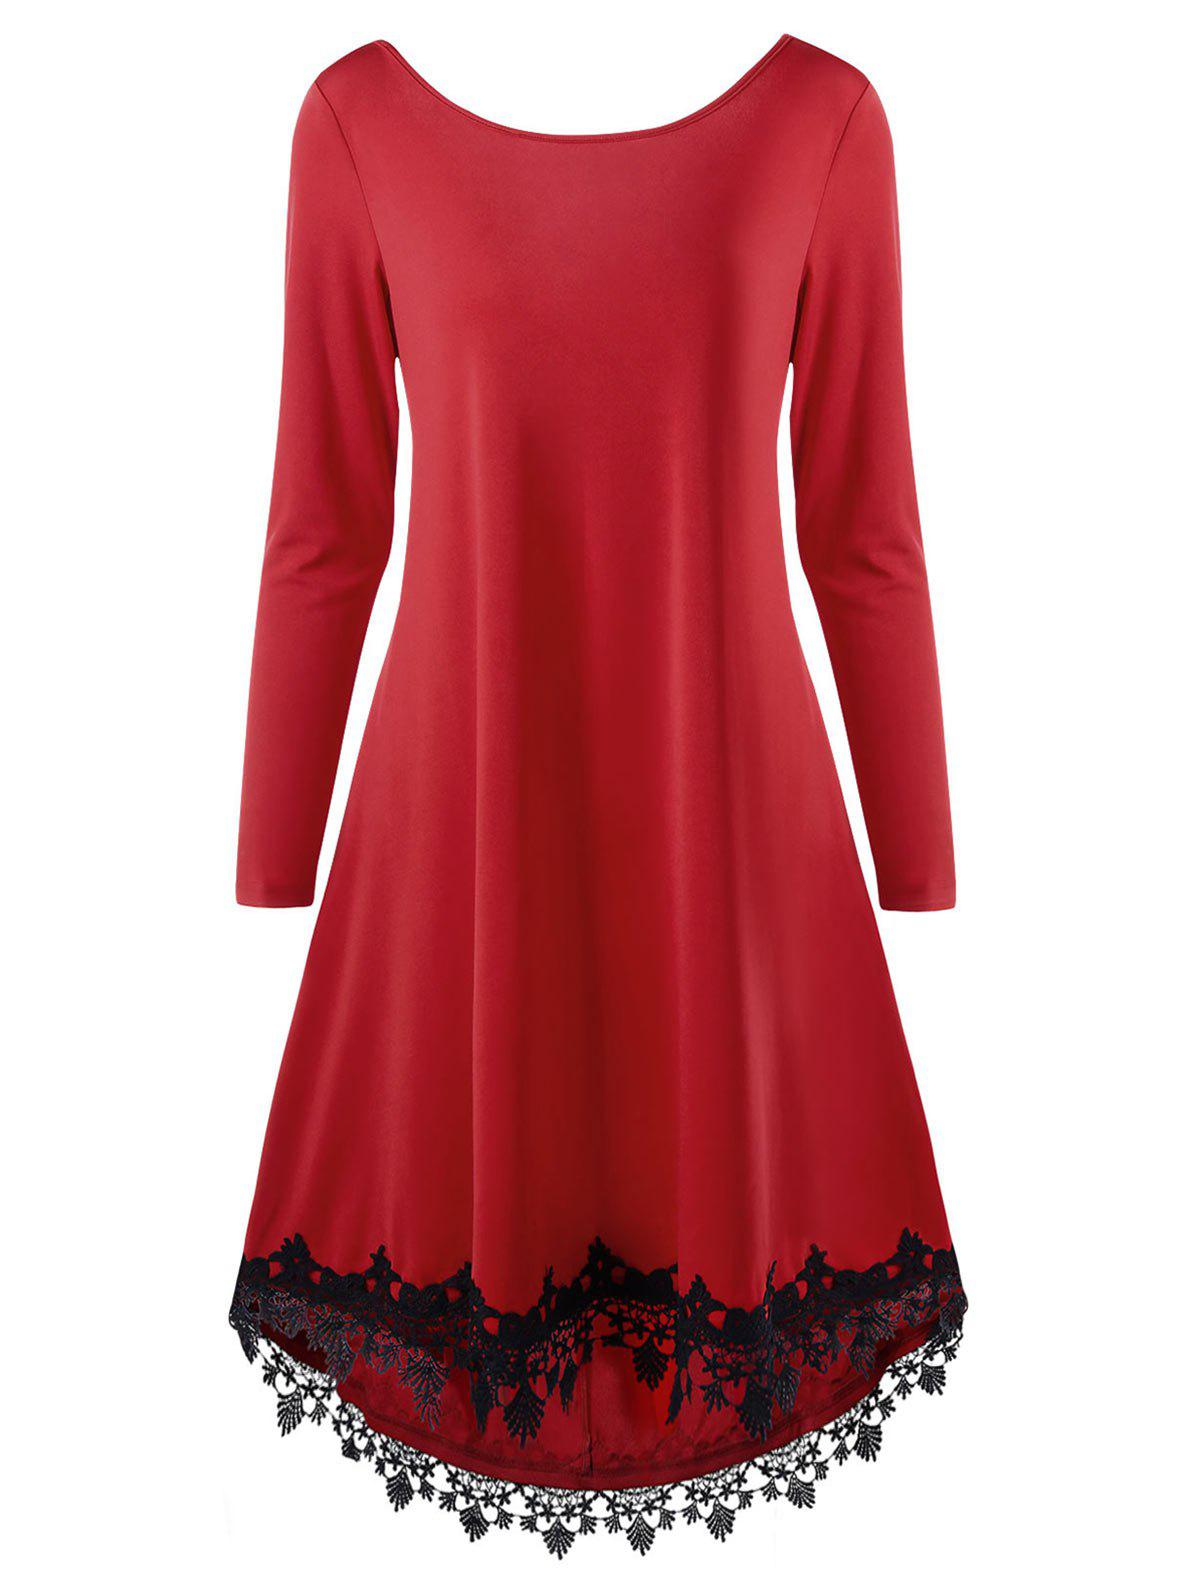 Open Back High Low Lace Trim DressWOMEN<br><br>Size: 2XL; Color: RED; Style: Casual; Material: Polyester,Spandex; Silhouette: A-Line; Dresses Length: Knee-Length; Neckline: Round Collar; Sleeve Length: Long Sleeves; Embellishment: Bowknot,Pearls; Pattern Type: Solid Color; With Belt: No; Season: Fall,Spring; Weight: 0.4670kg; Package Contents: 1 x Dress; Occasion: Casual;